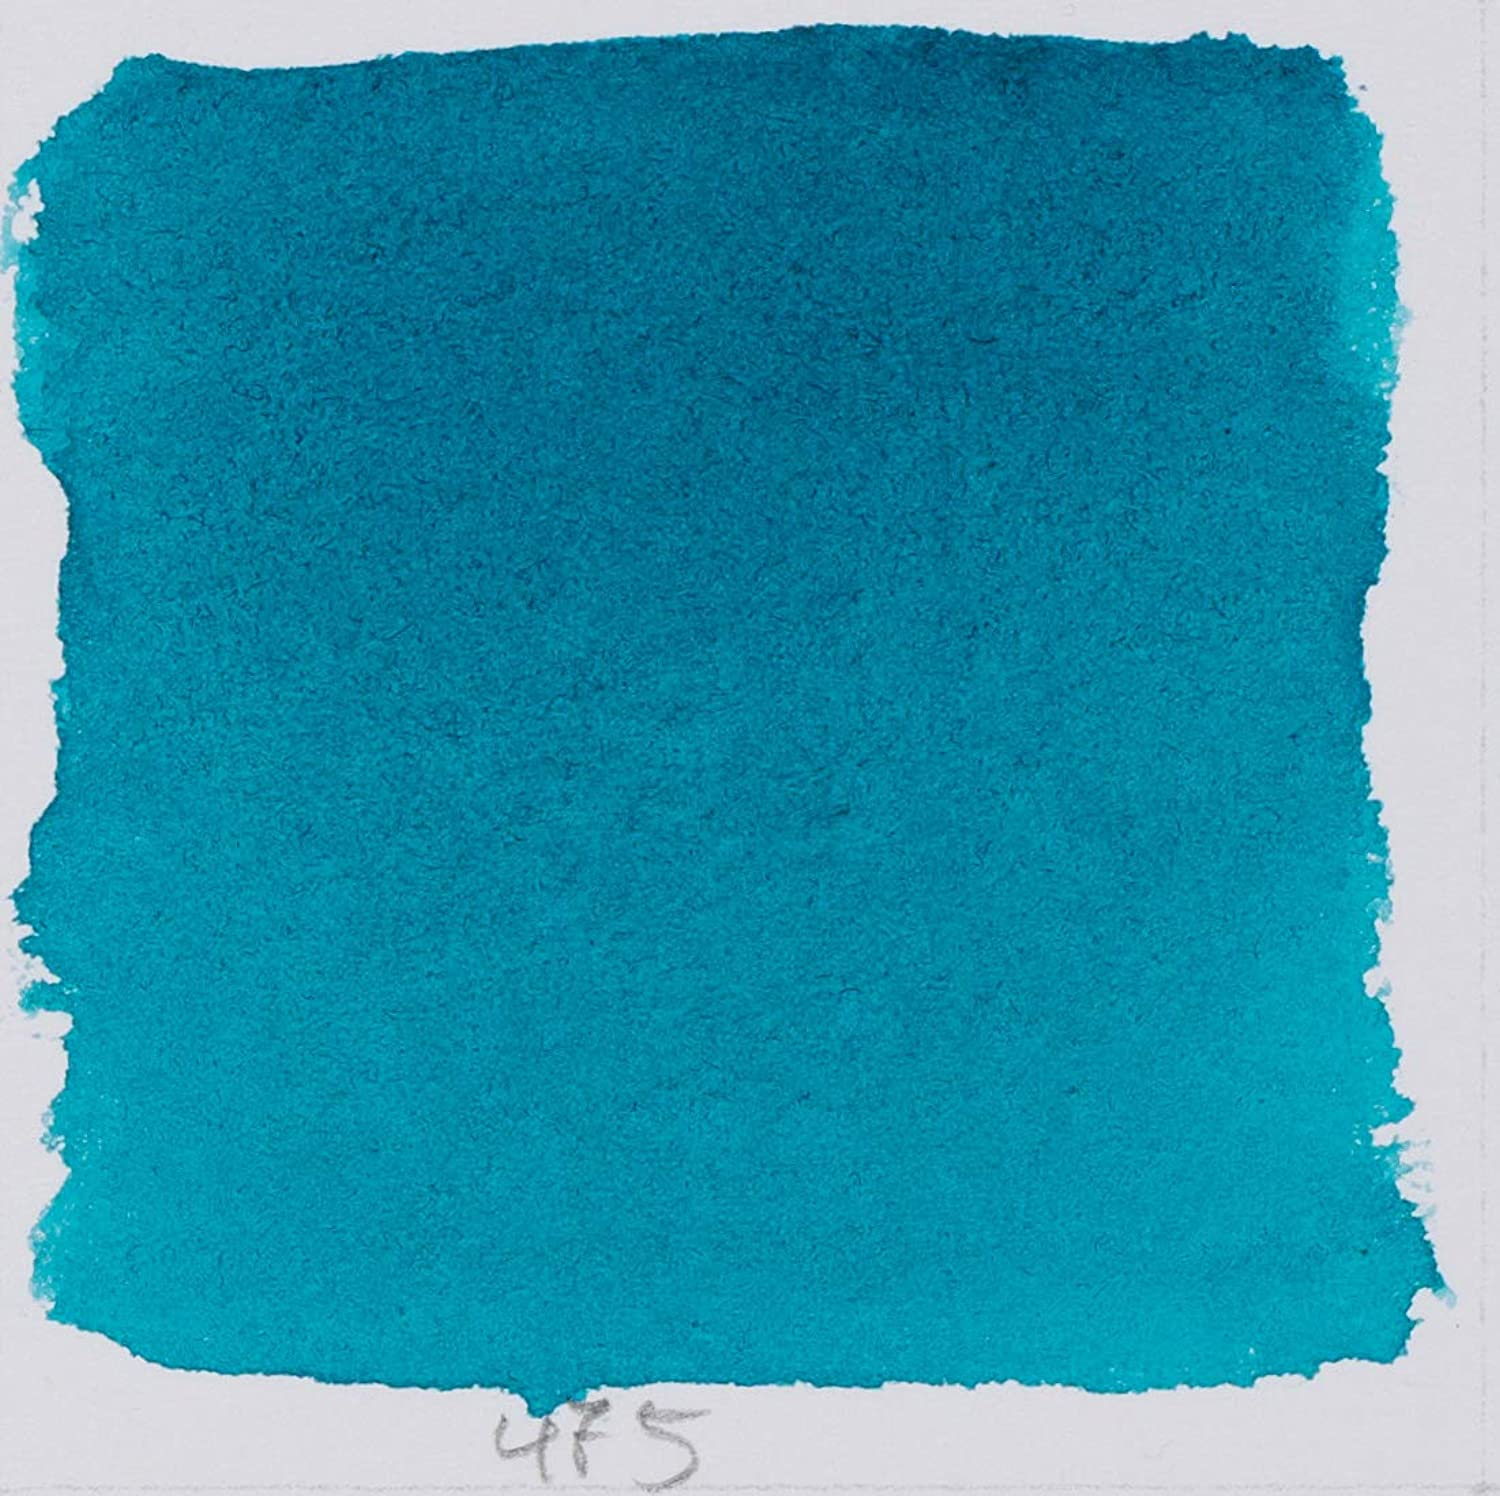 Schmincke 14475043 Watercolor Pans, Helio Turquoise, Full Pan